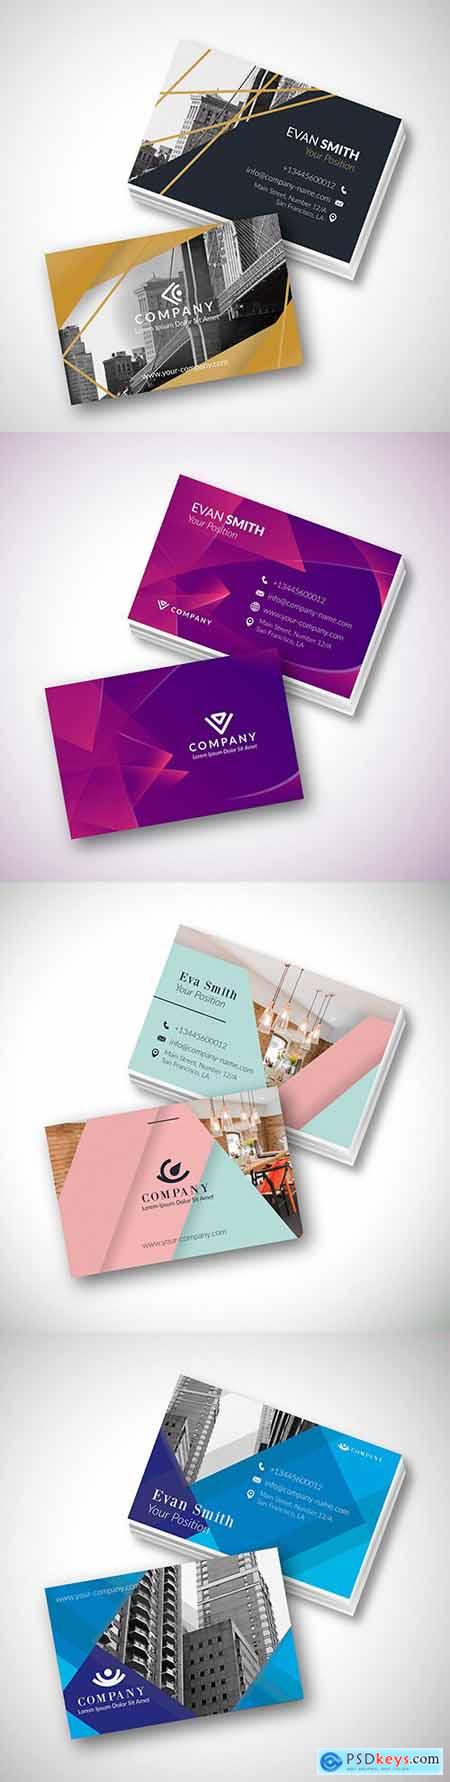 Modern template business card design with photo